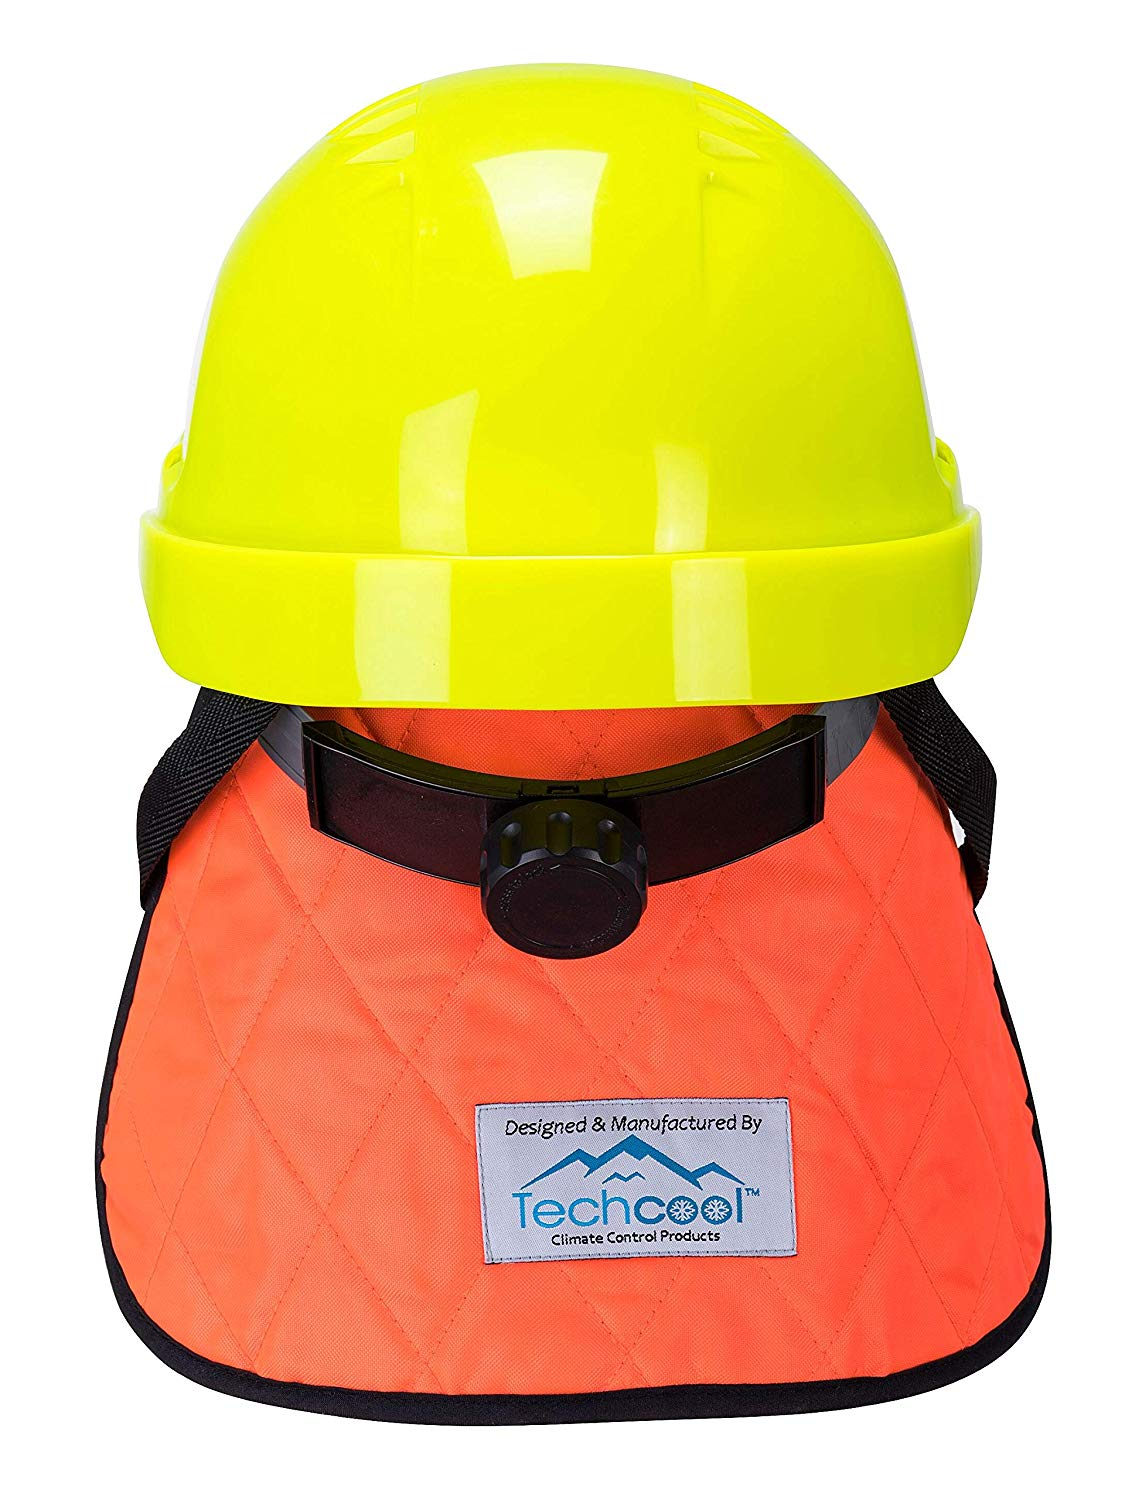 Brite Safety Evaporative Cooling Crown with Neck Shade - Adaptable on All Helmets Hard Hats